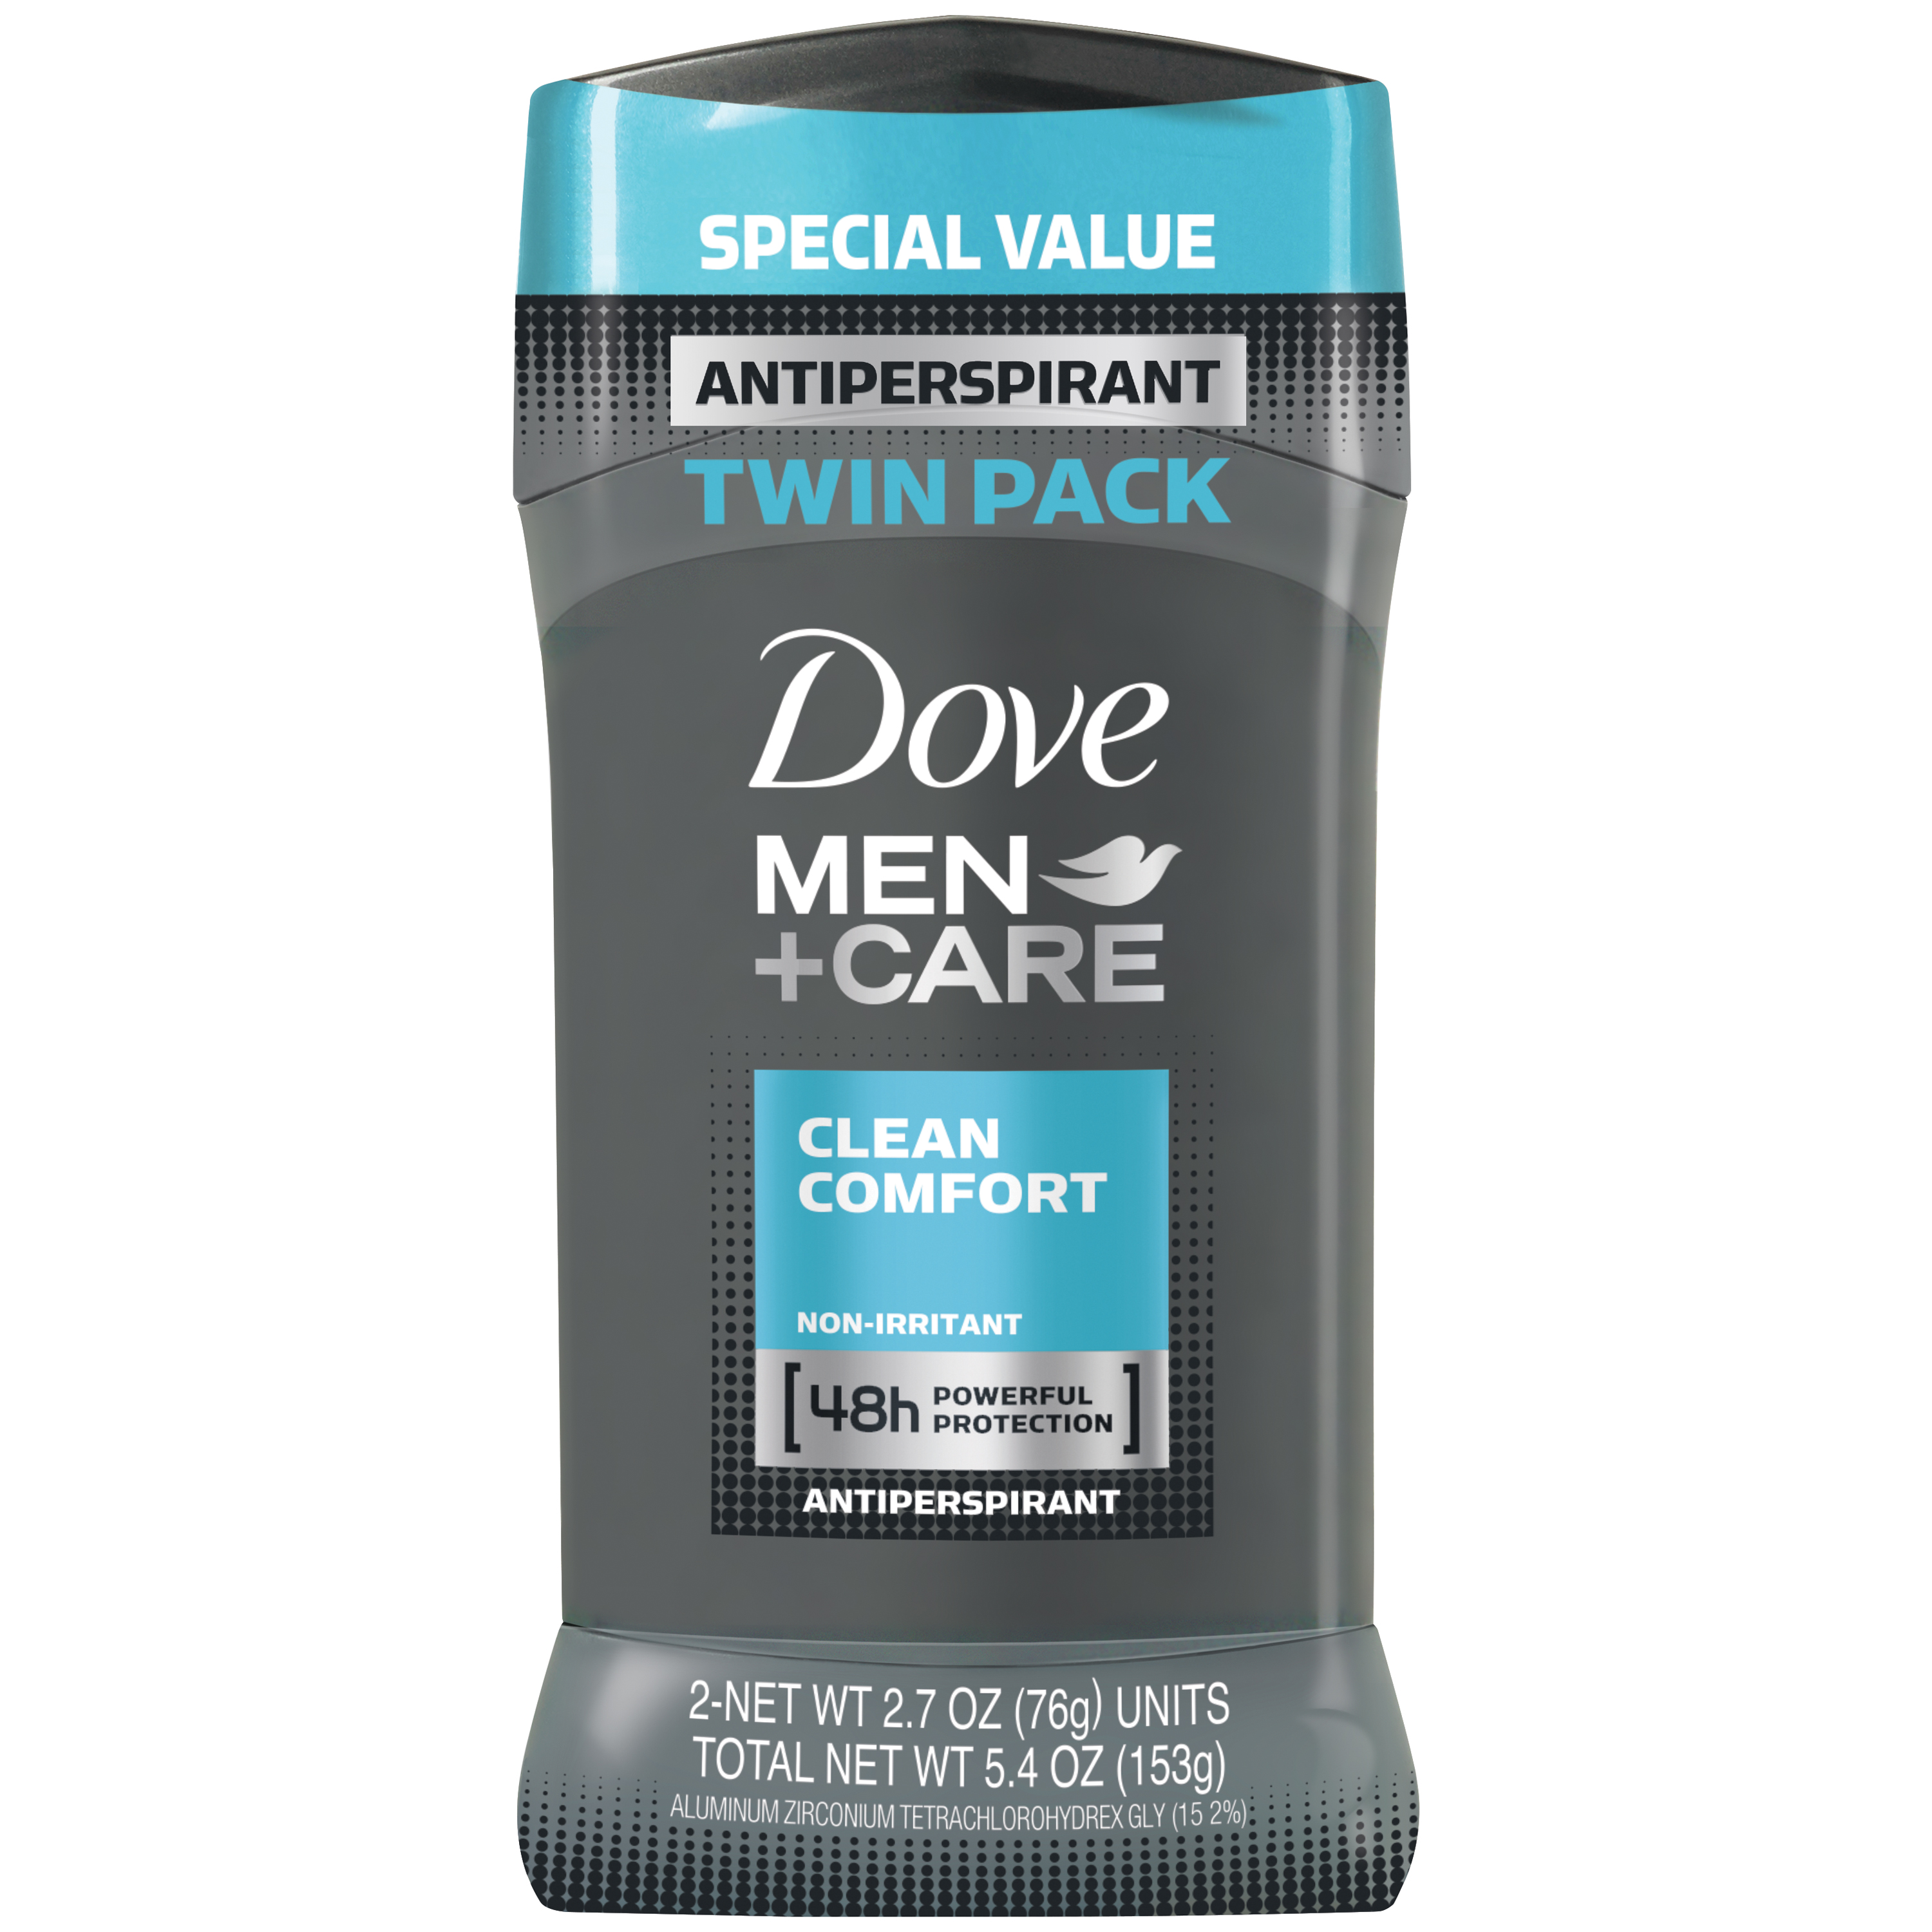 Dove Men+Care Clean Comfort Antiperspirant Stick 2.7 oz, Twin Pack